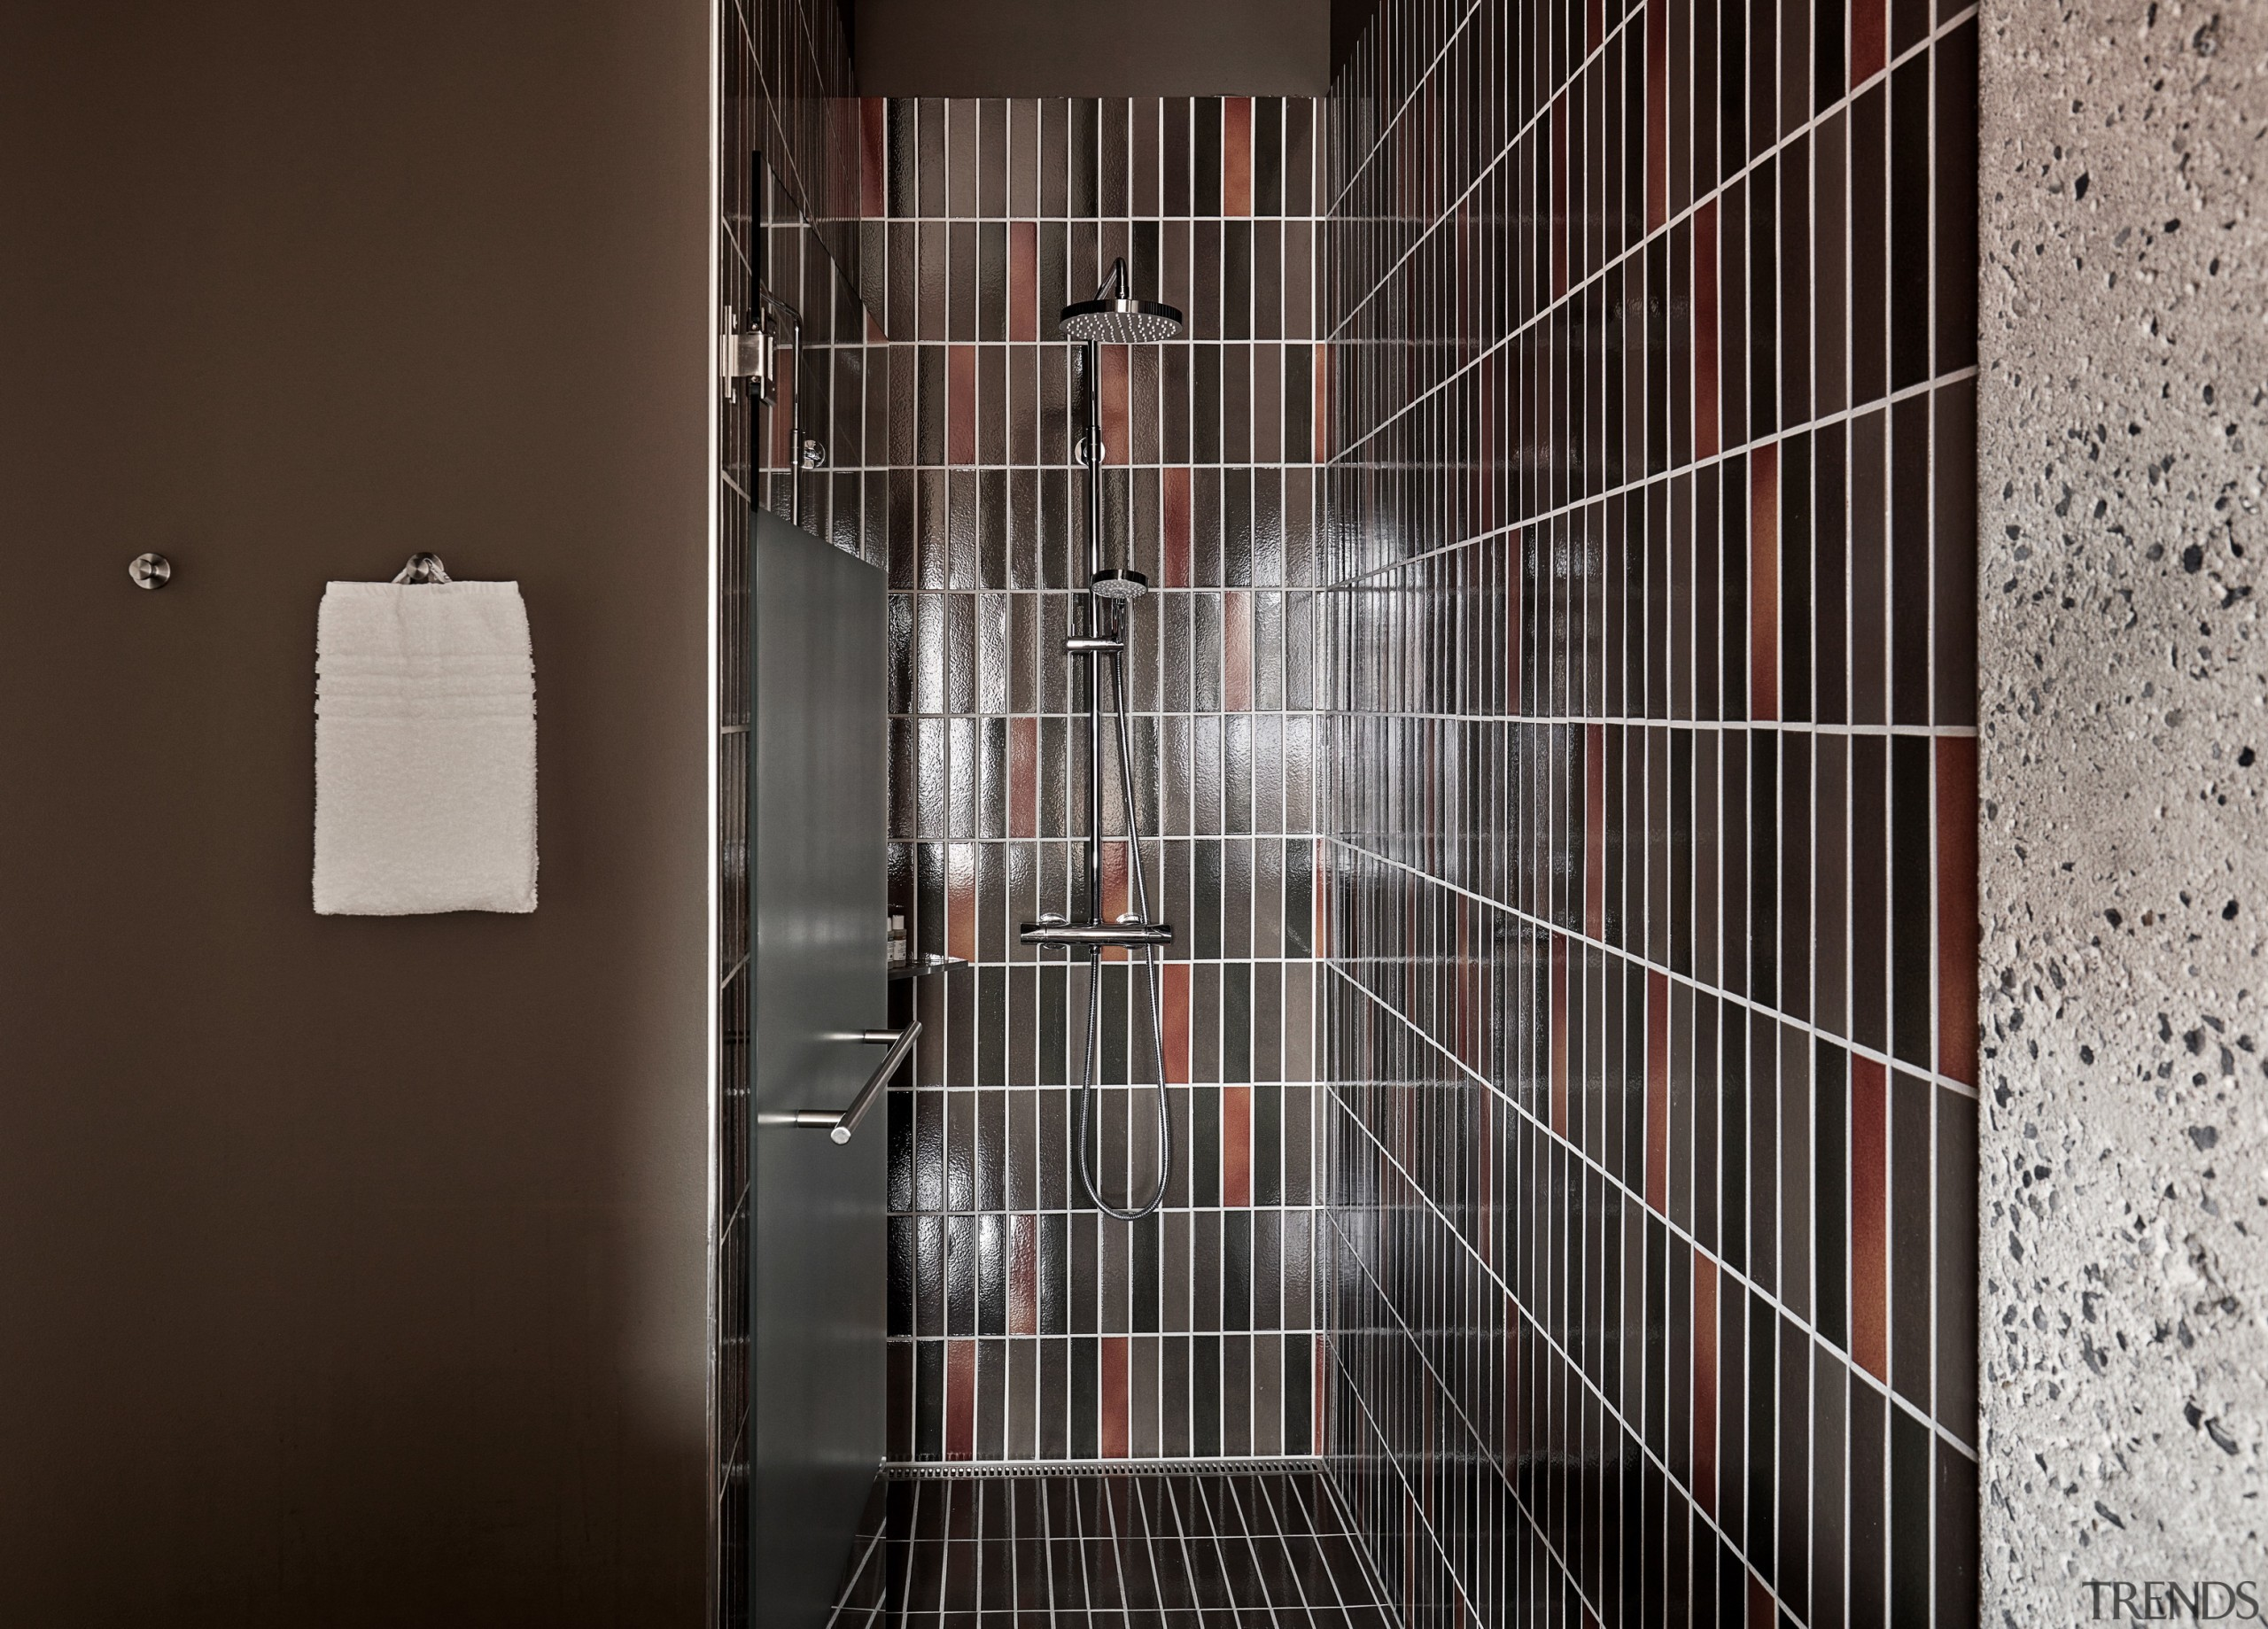 Ceramic tiles from Agrob Buchtal's Craft series adorn architecture, door, flooring, glass, line, room, tile, wall, black, gray